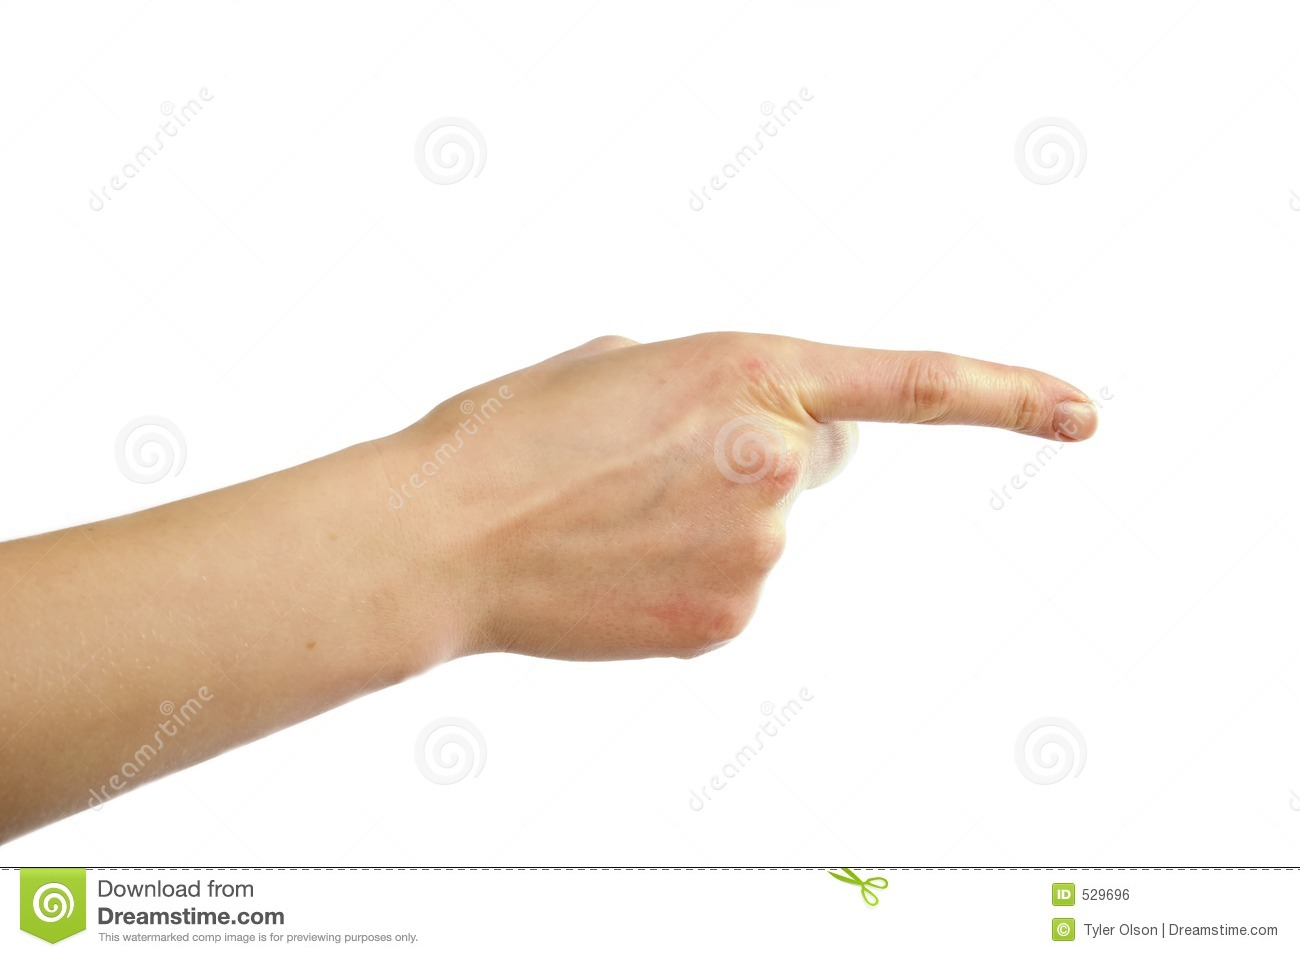 An adult female hand pointing. Image includes clipping path.